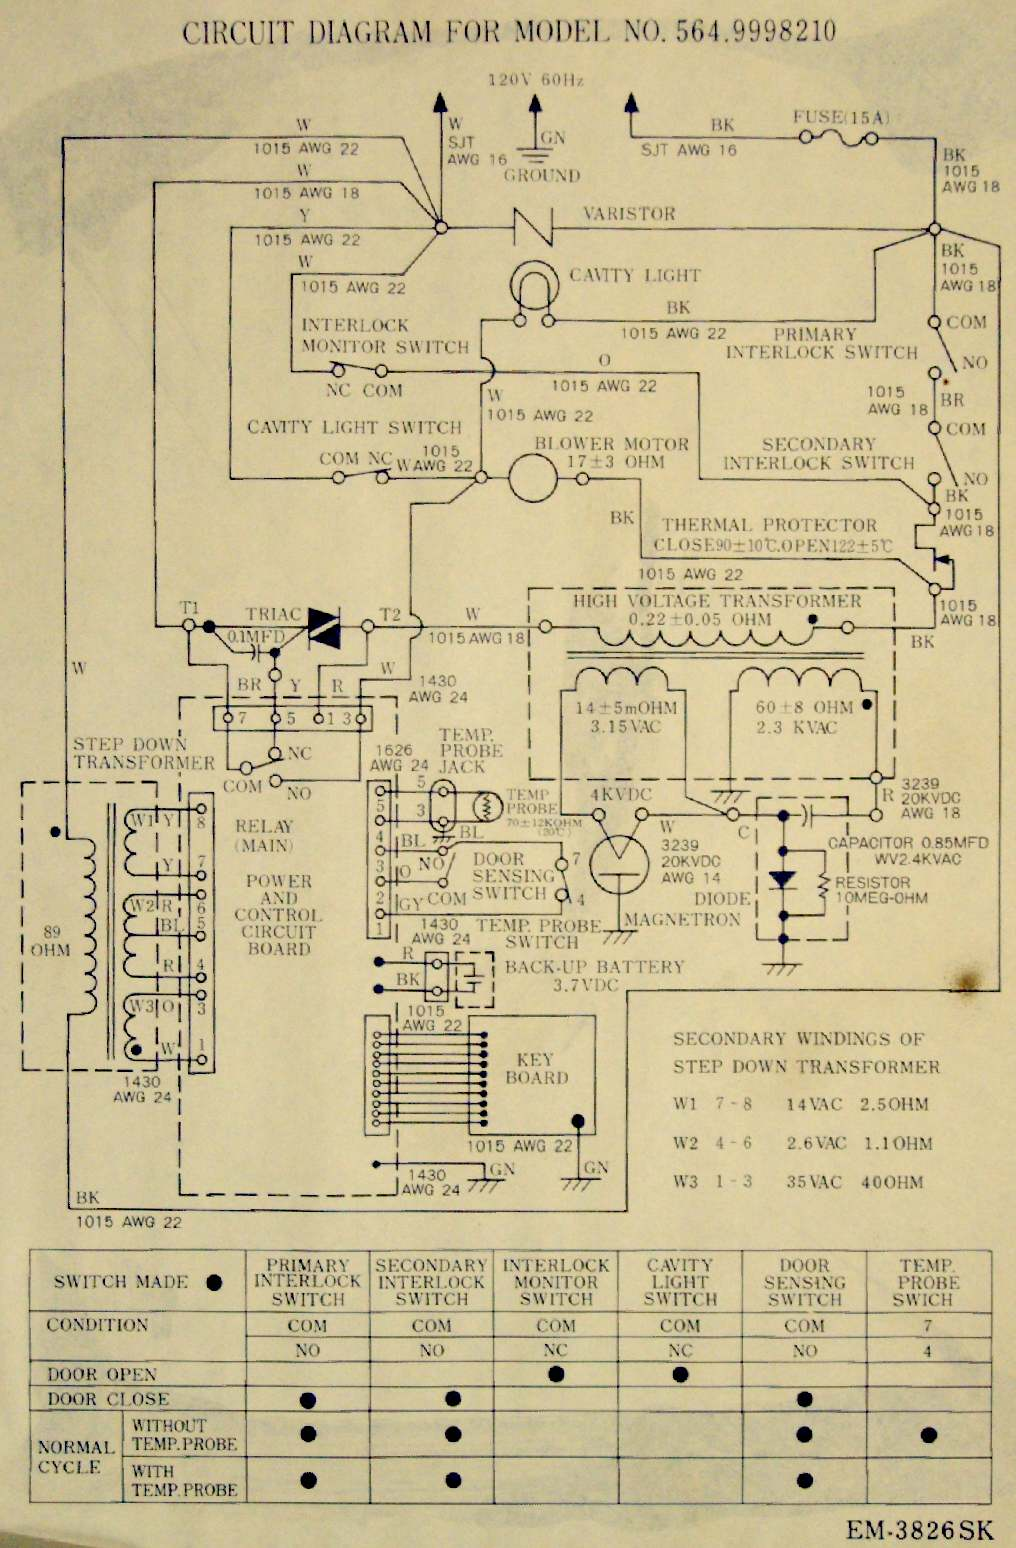 cimg1968 microwave oven schematic microwave oven block diagram the wiring diagram readingrat net lg microwave wiring diagram at gsmportal.co